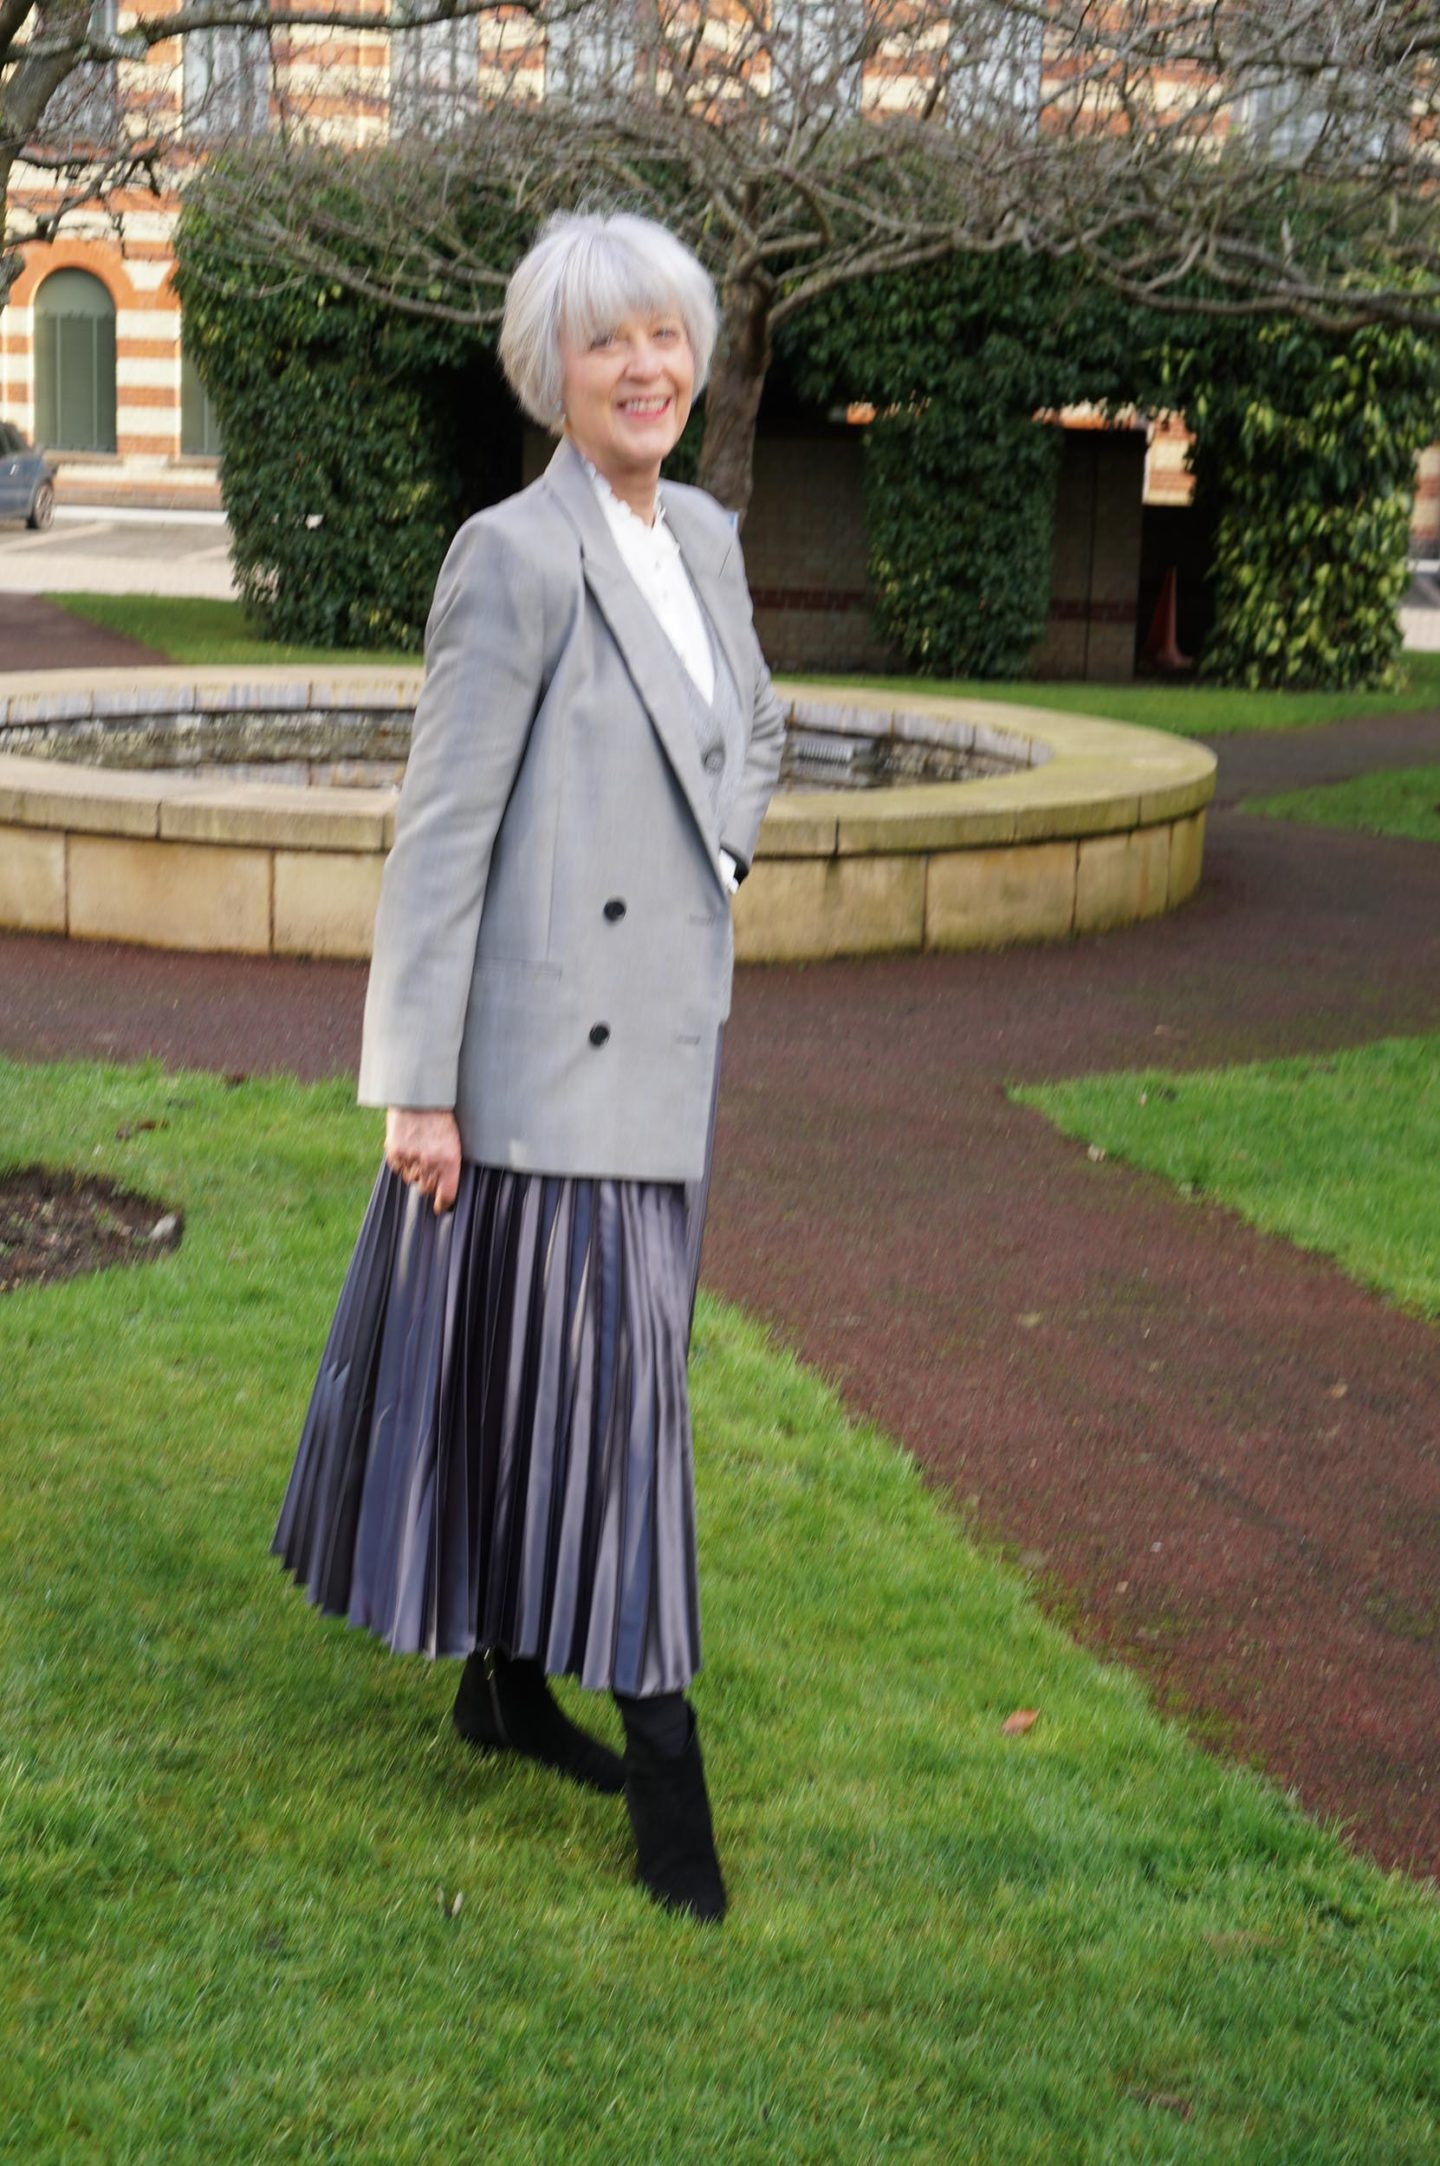 Grey pleated maxi skirt and double breasted jacket